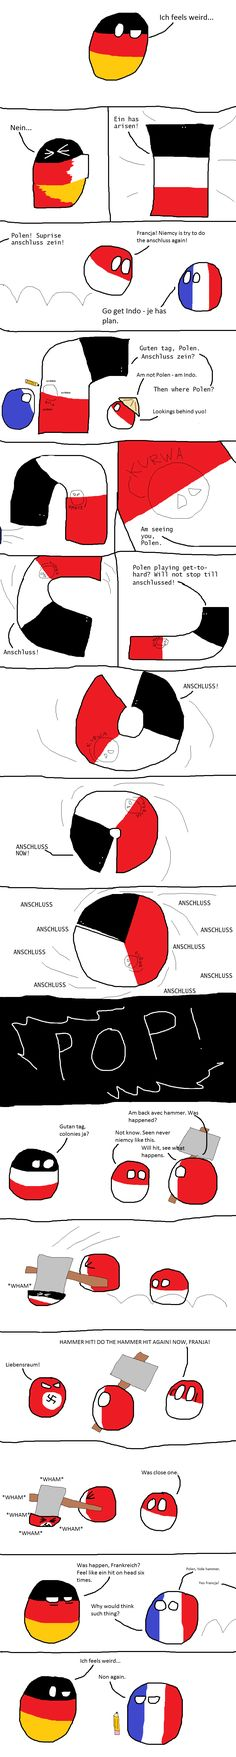 Pin by Tsersing Arron on Polandball Pinterest - grten